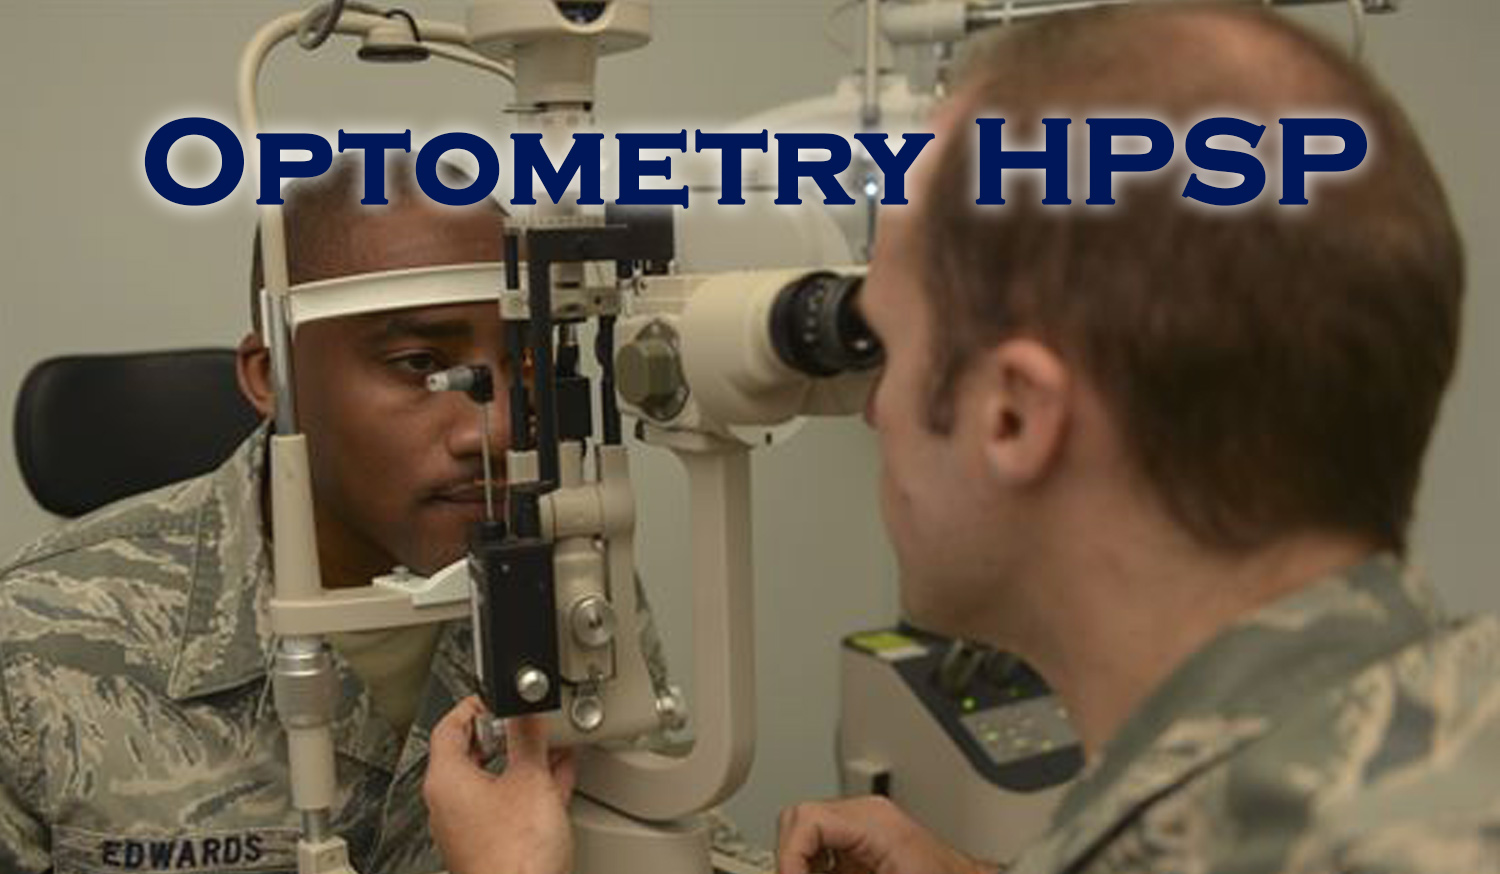 HPSP Optometry